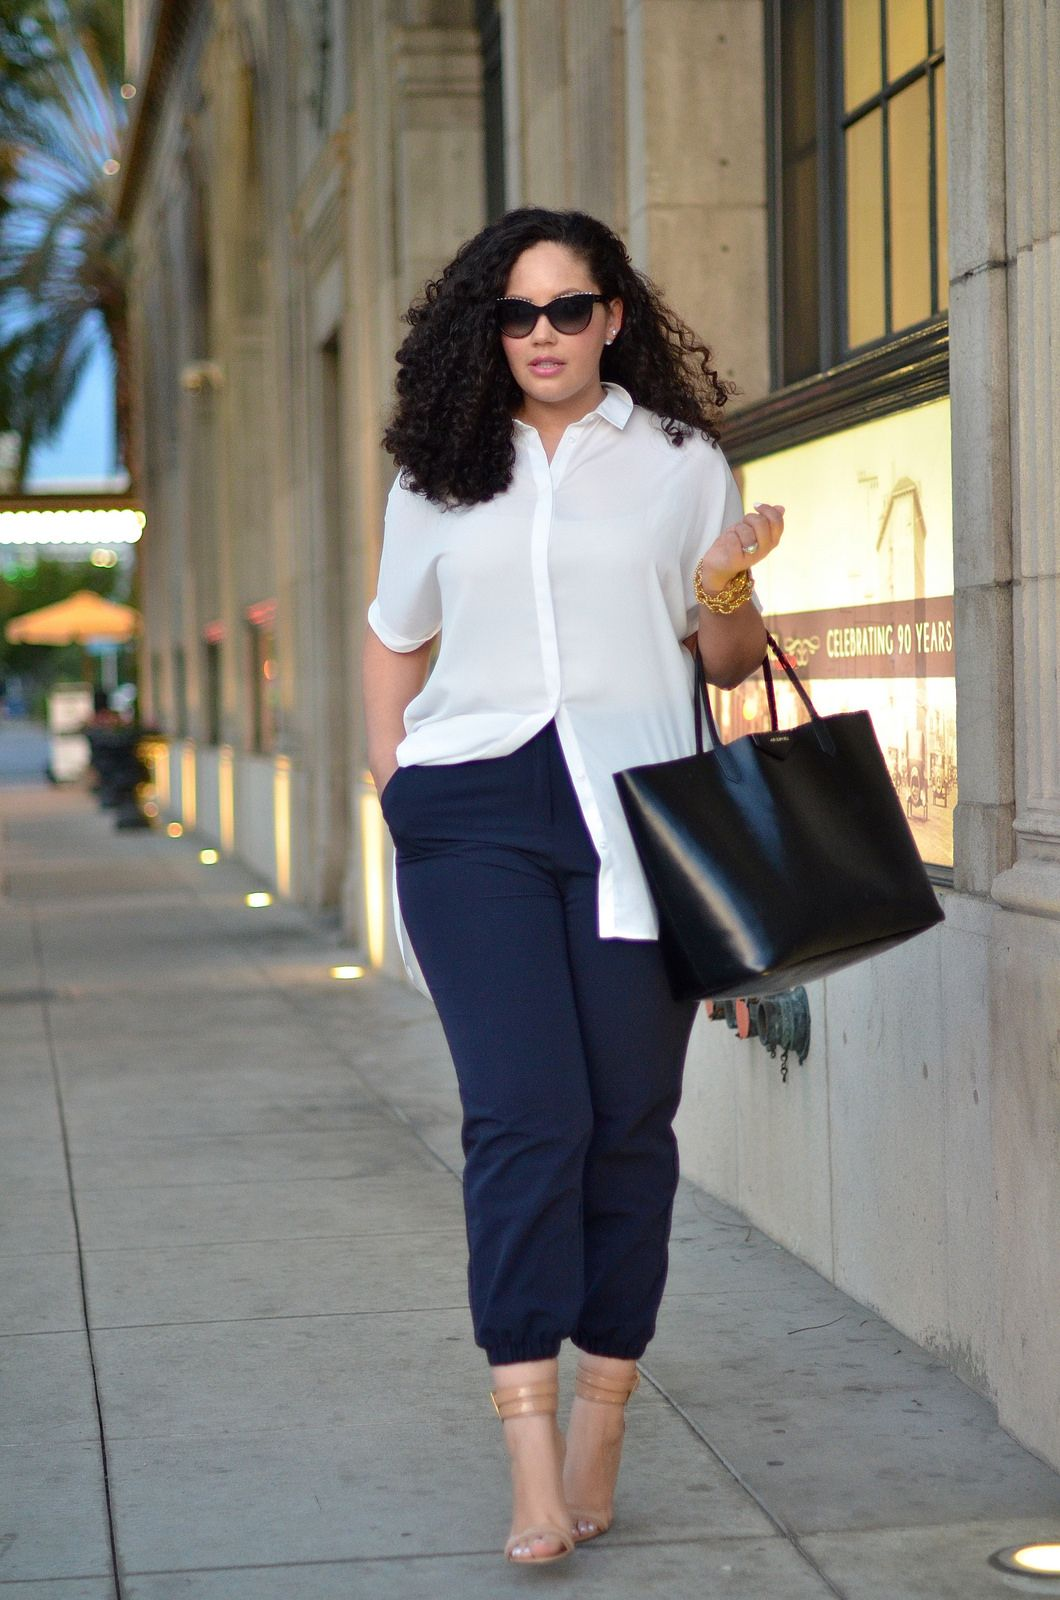 Outfits for curvy girls wearing an executive style